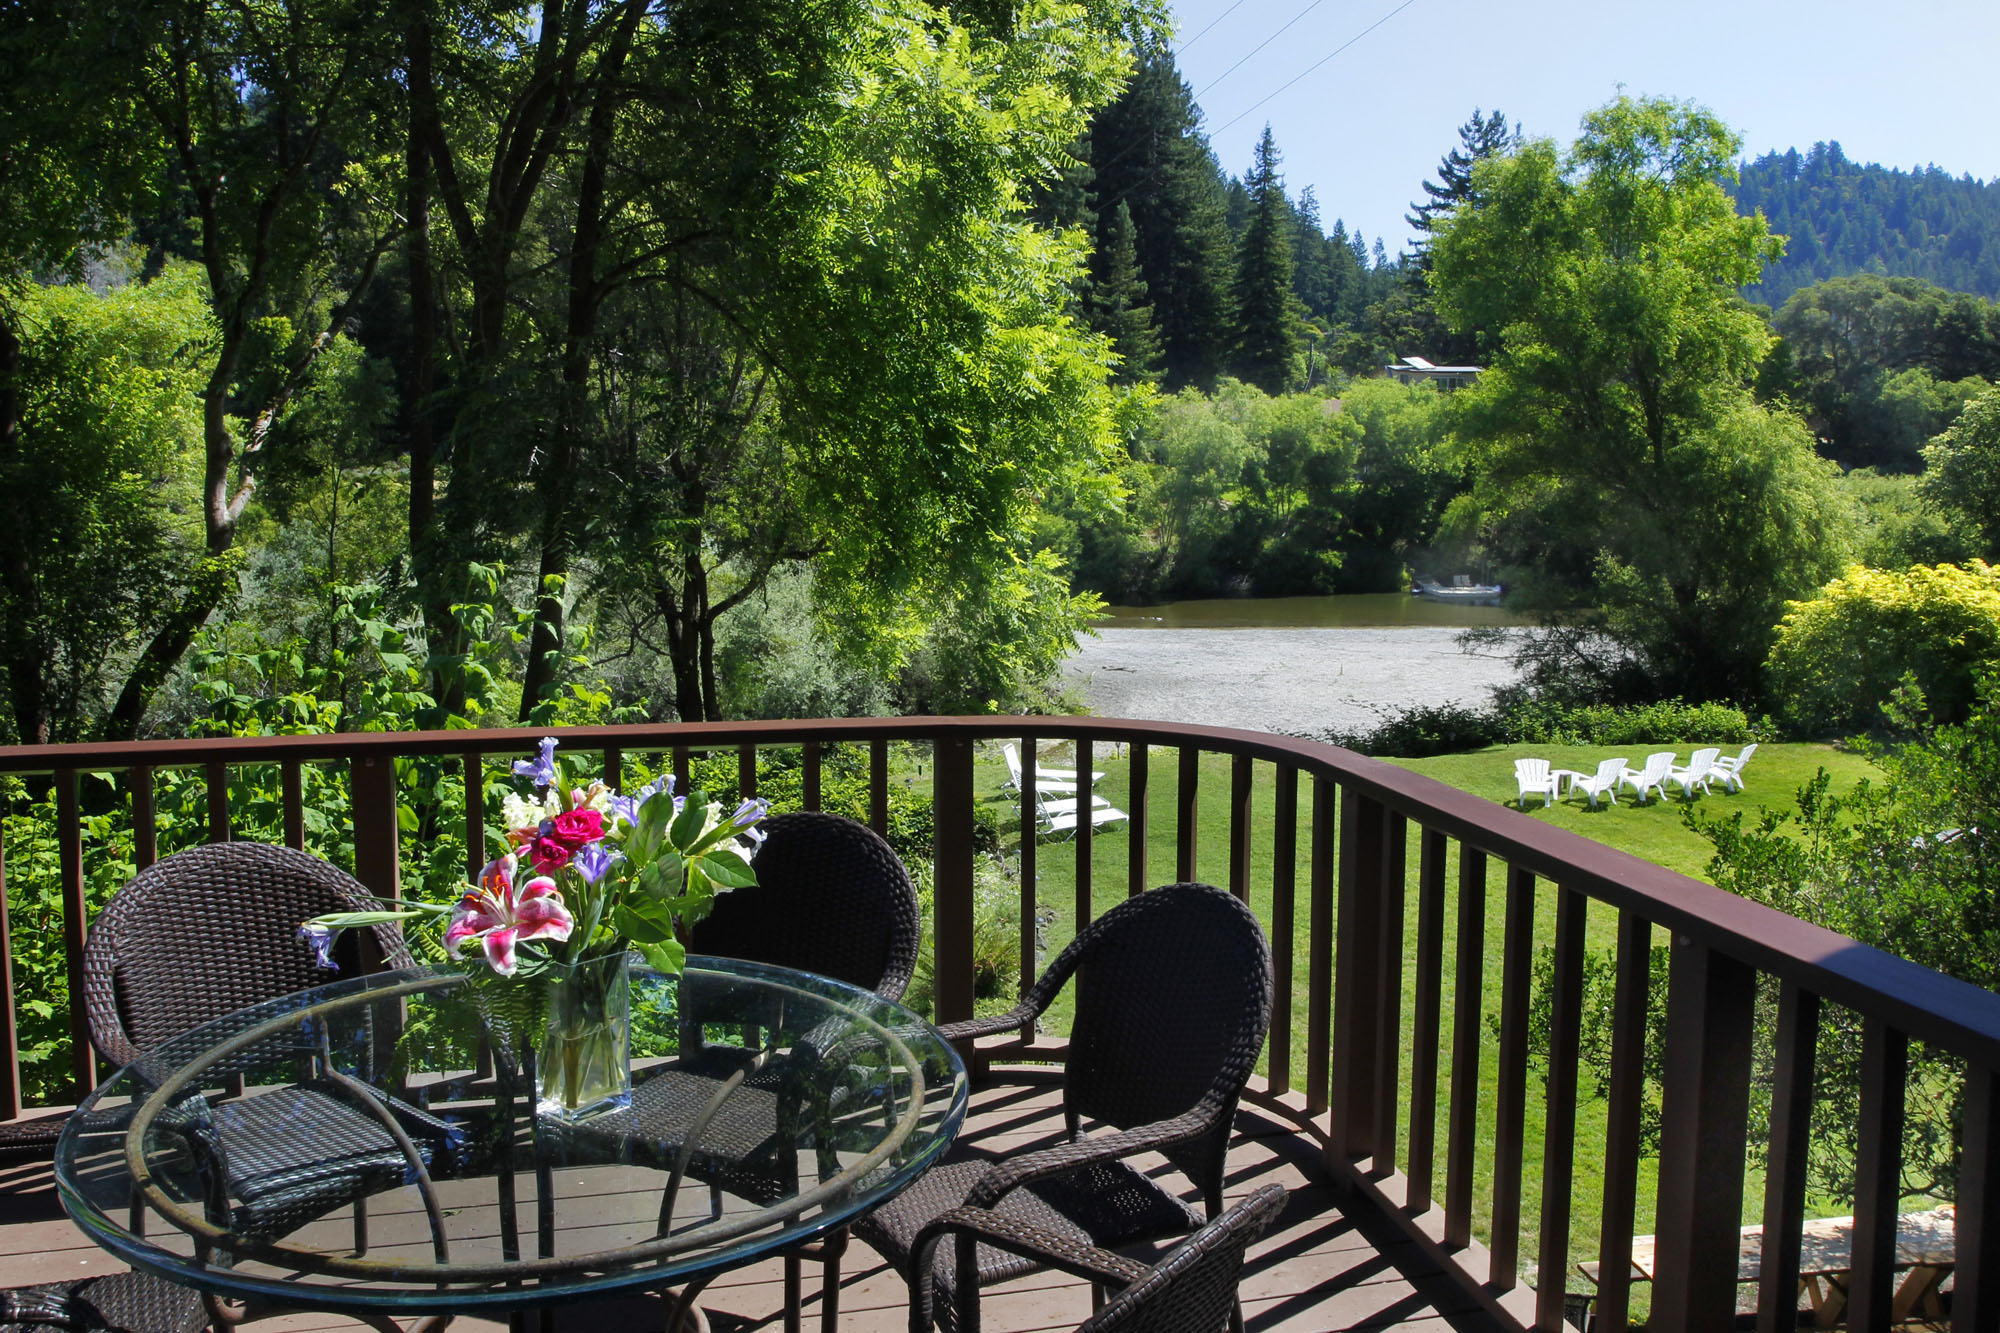 View from Deck to Russian River